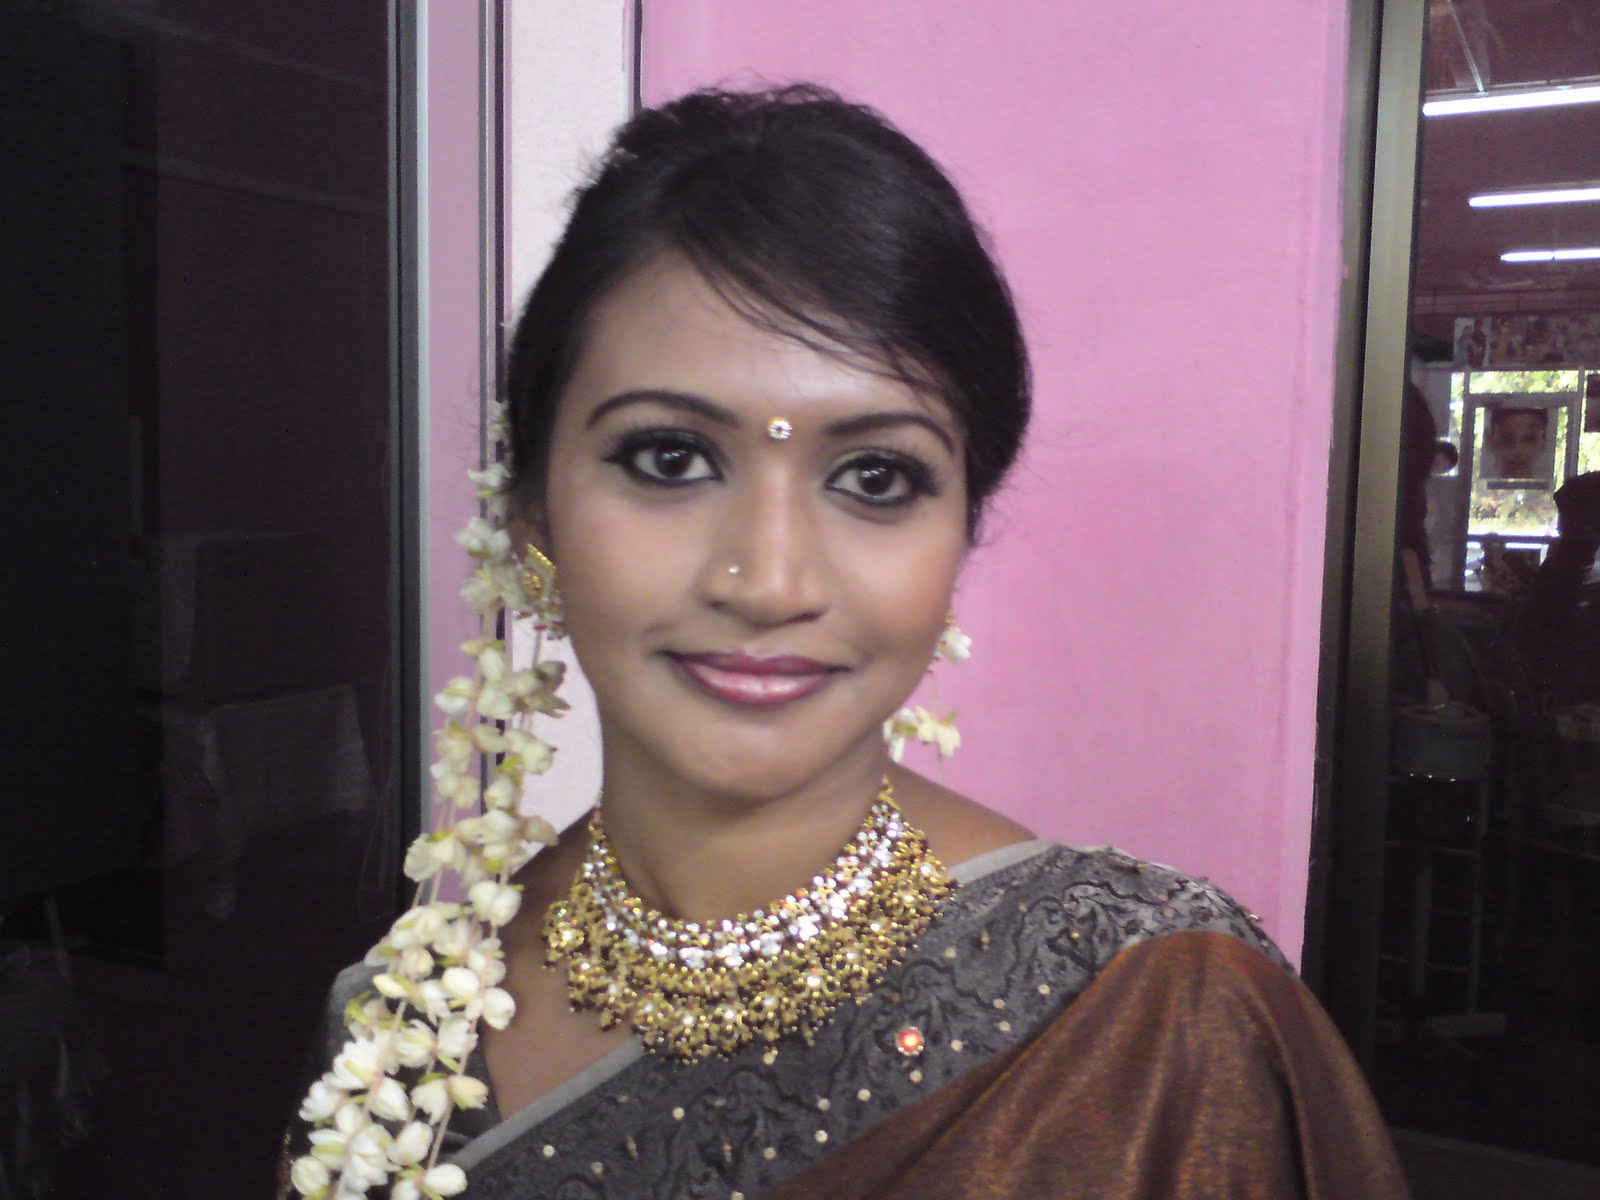 hairstyles for short hair in tamil: popular hairstyles from